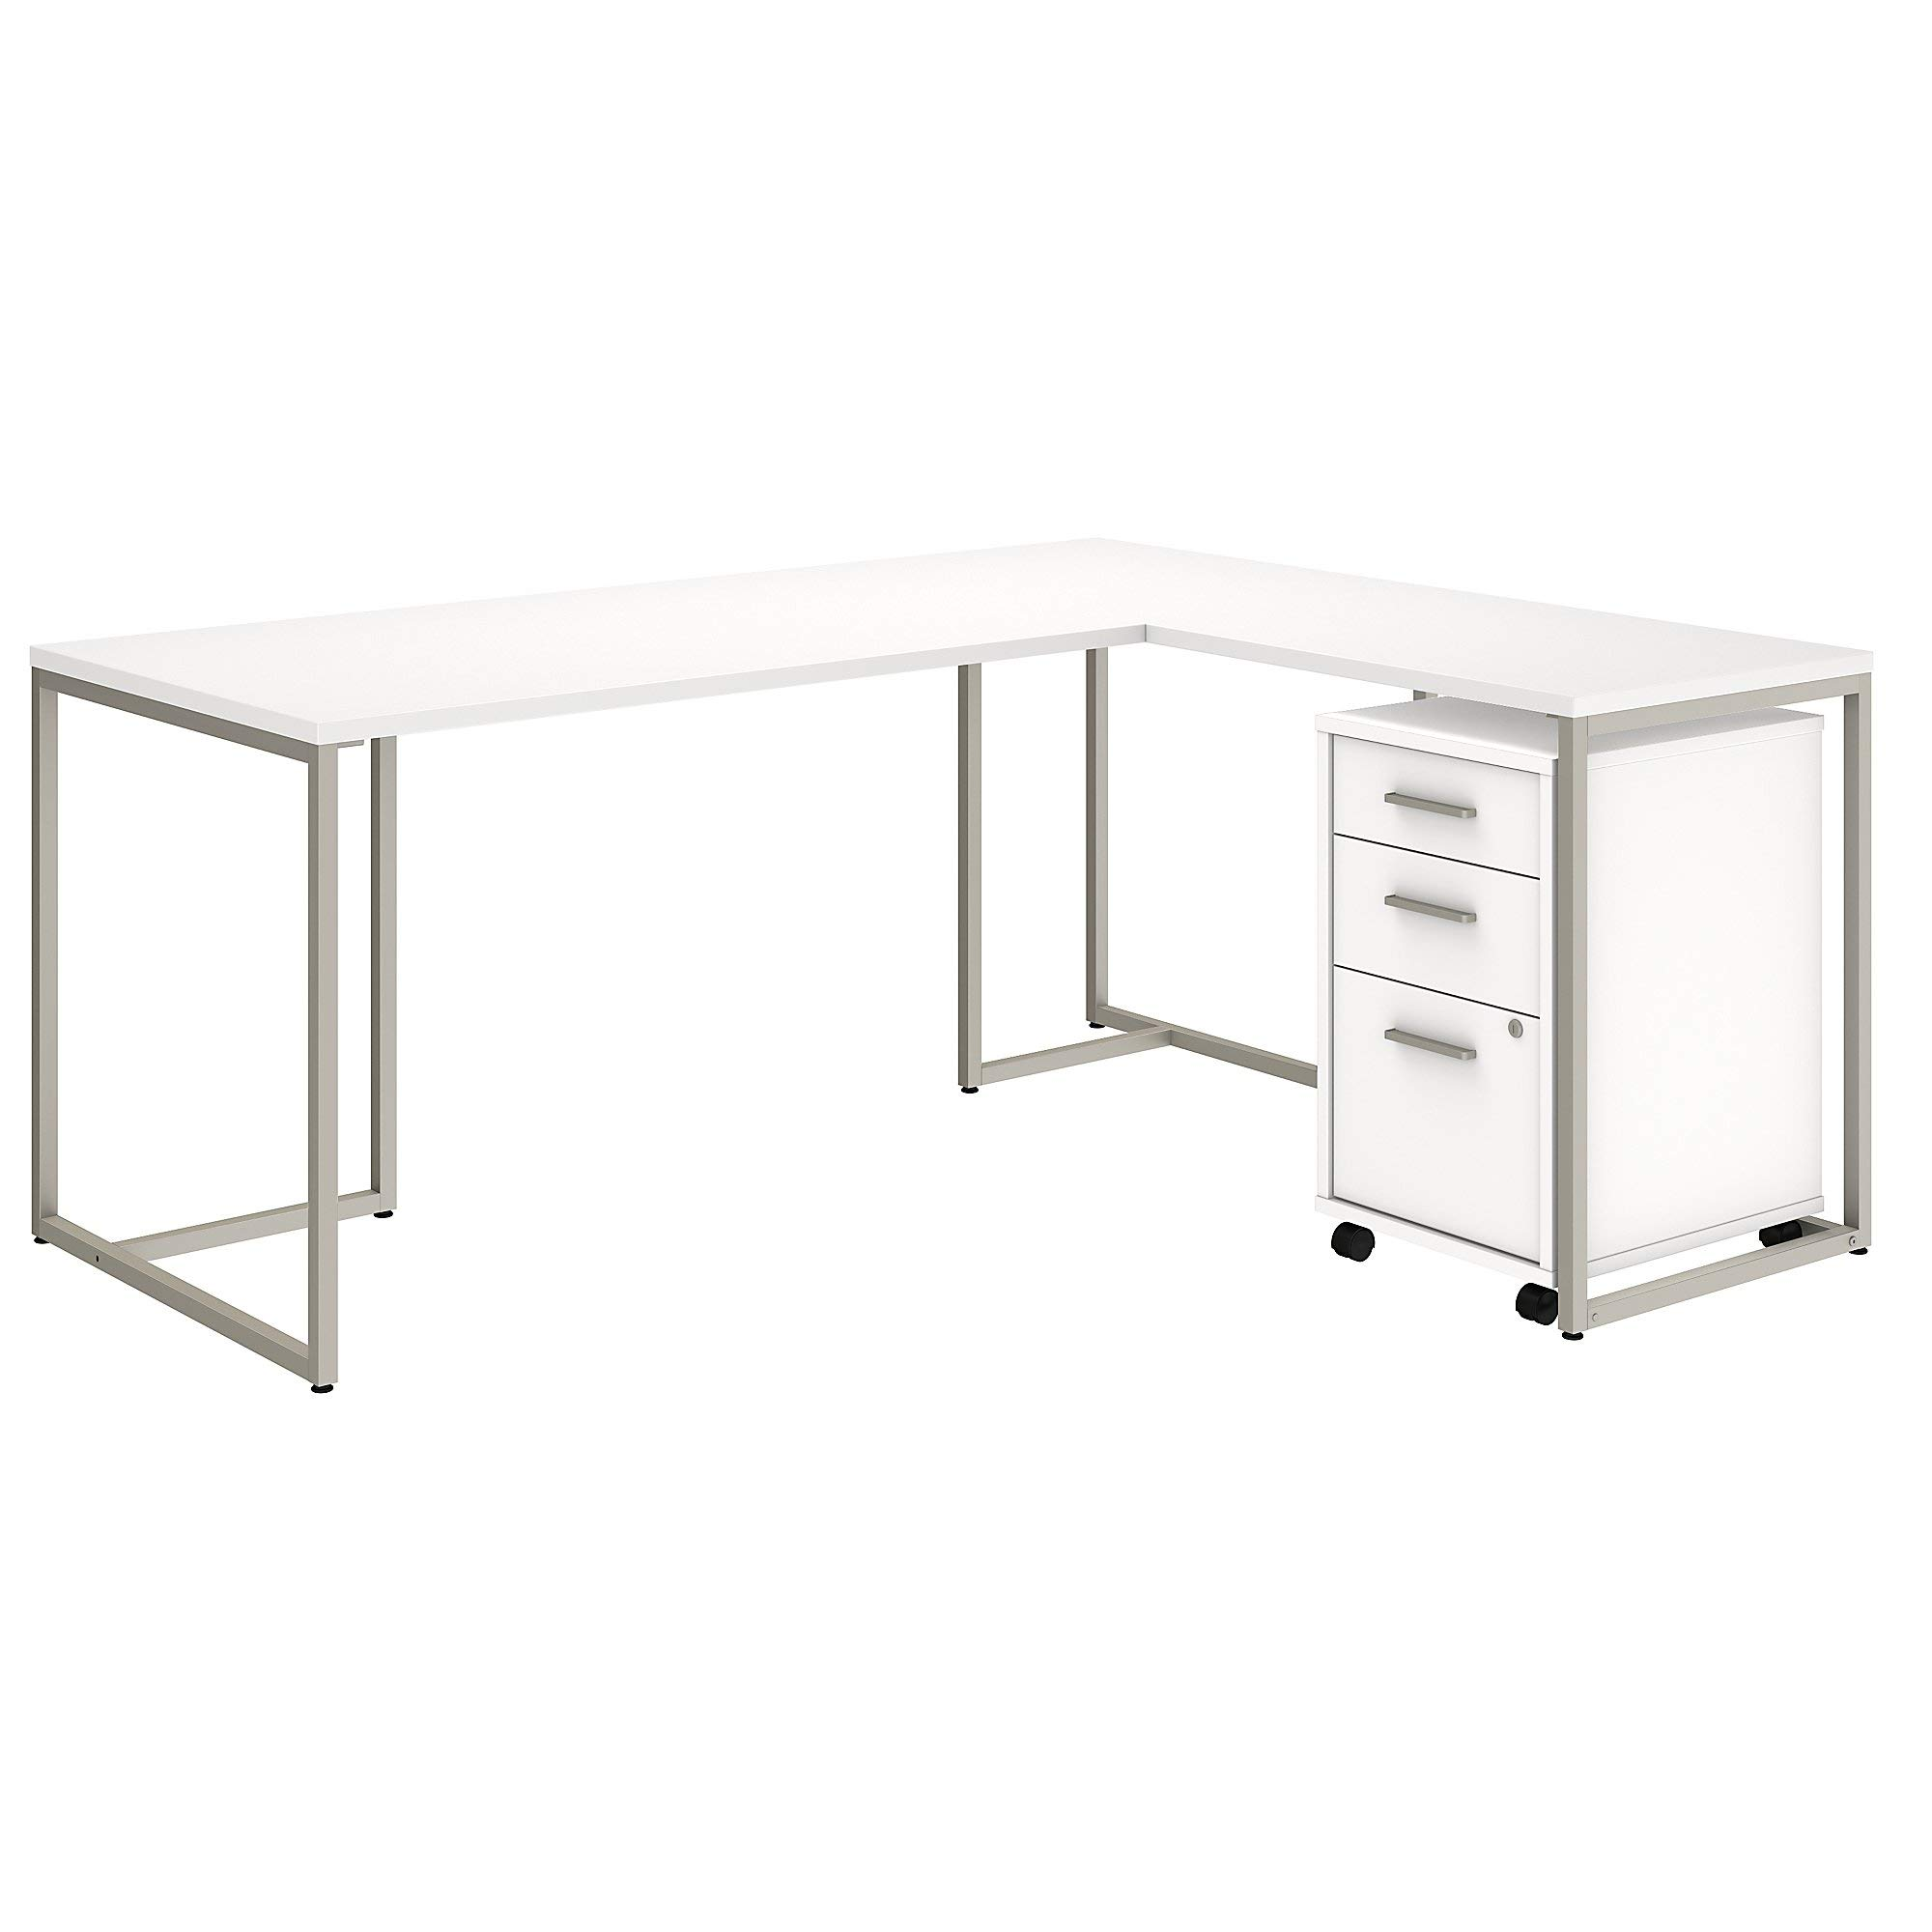 Office by kathy ireland Method 72W L Shaped Desk with 30W Return and Mobile File Cabinet in White